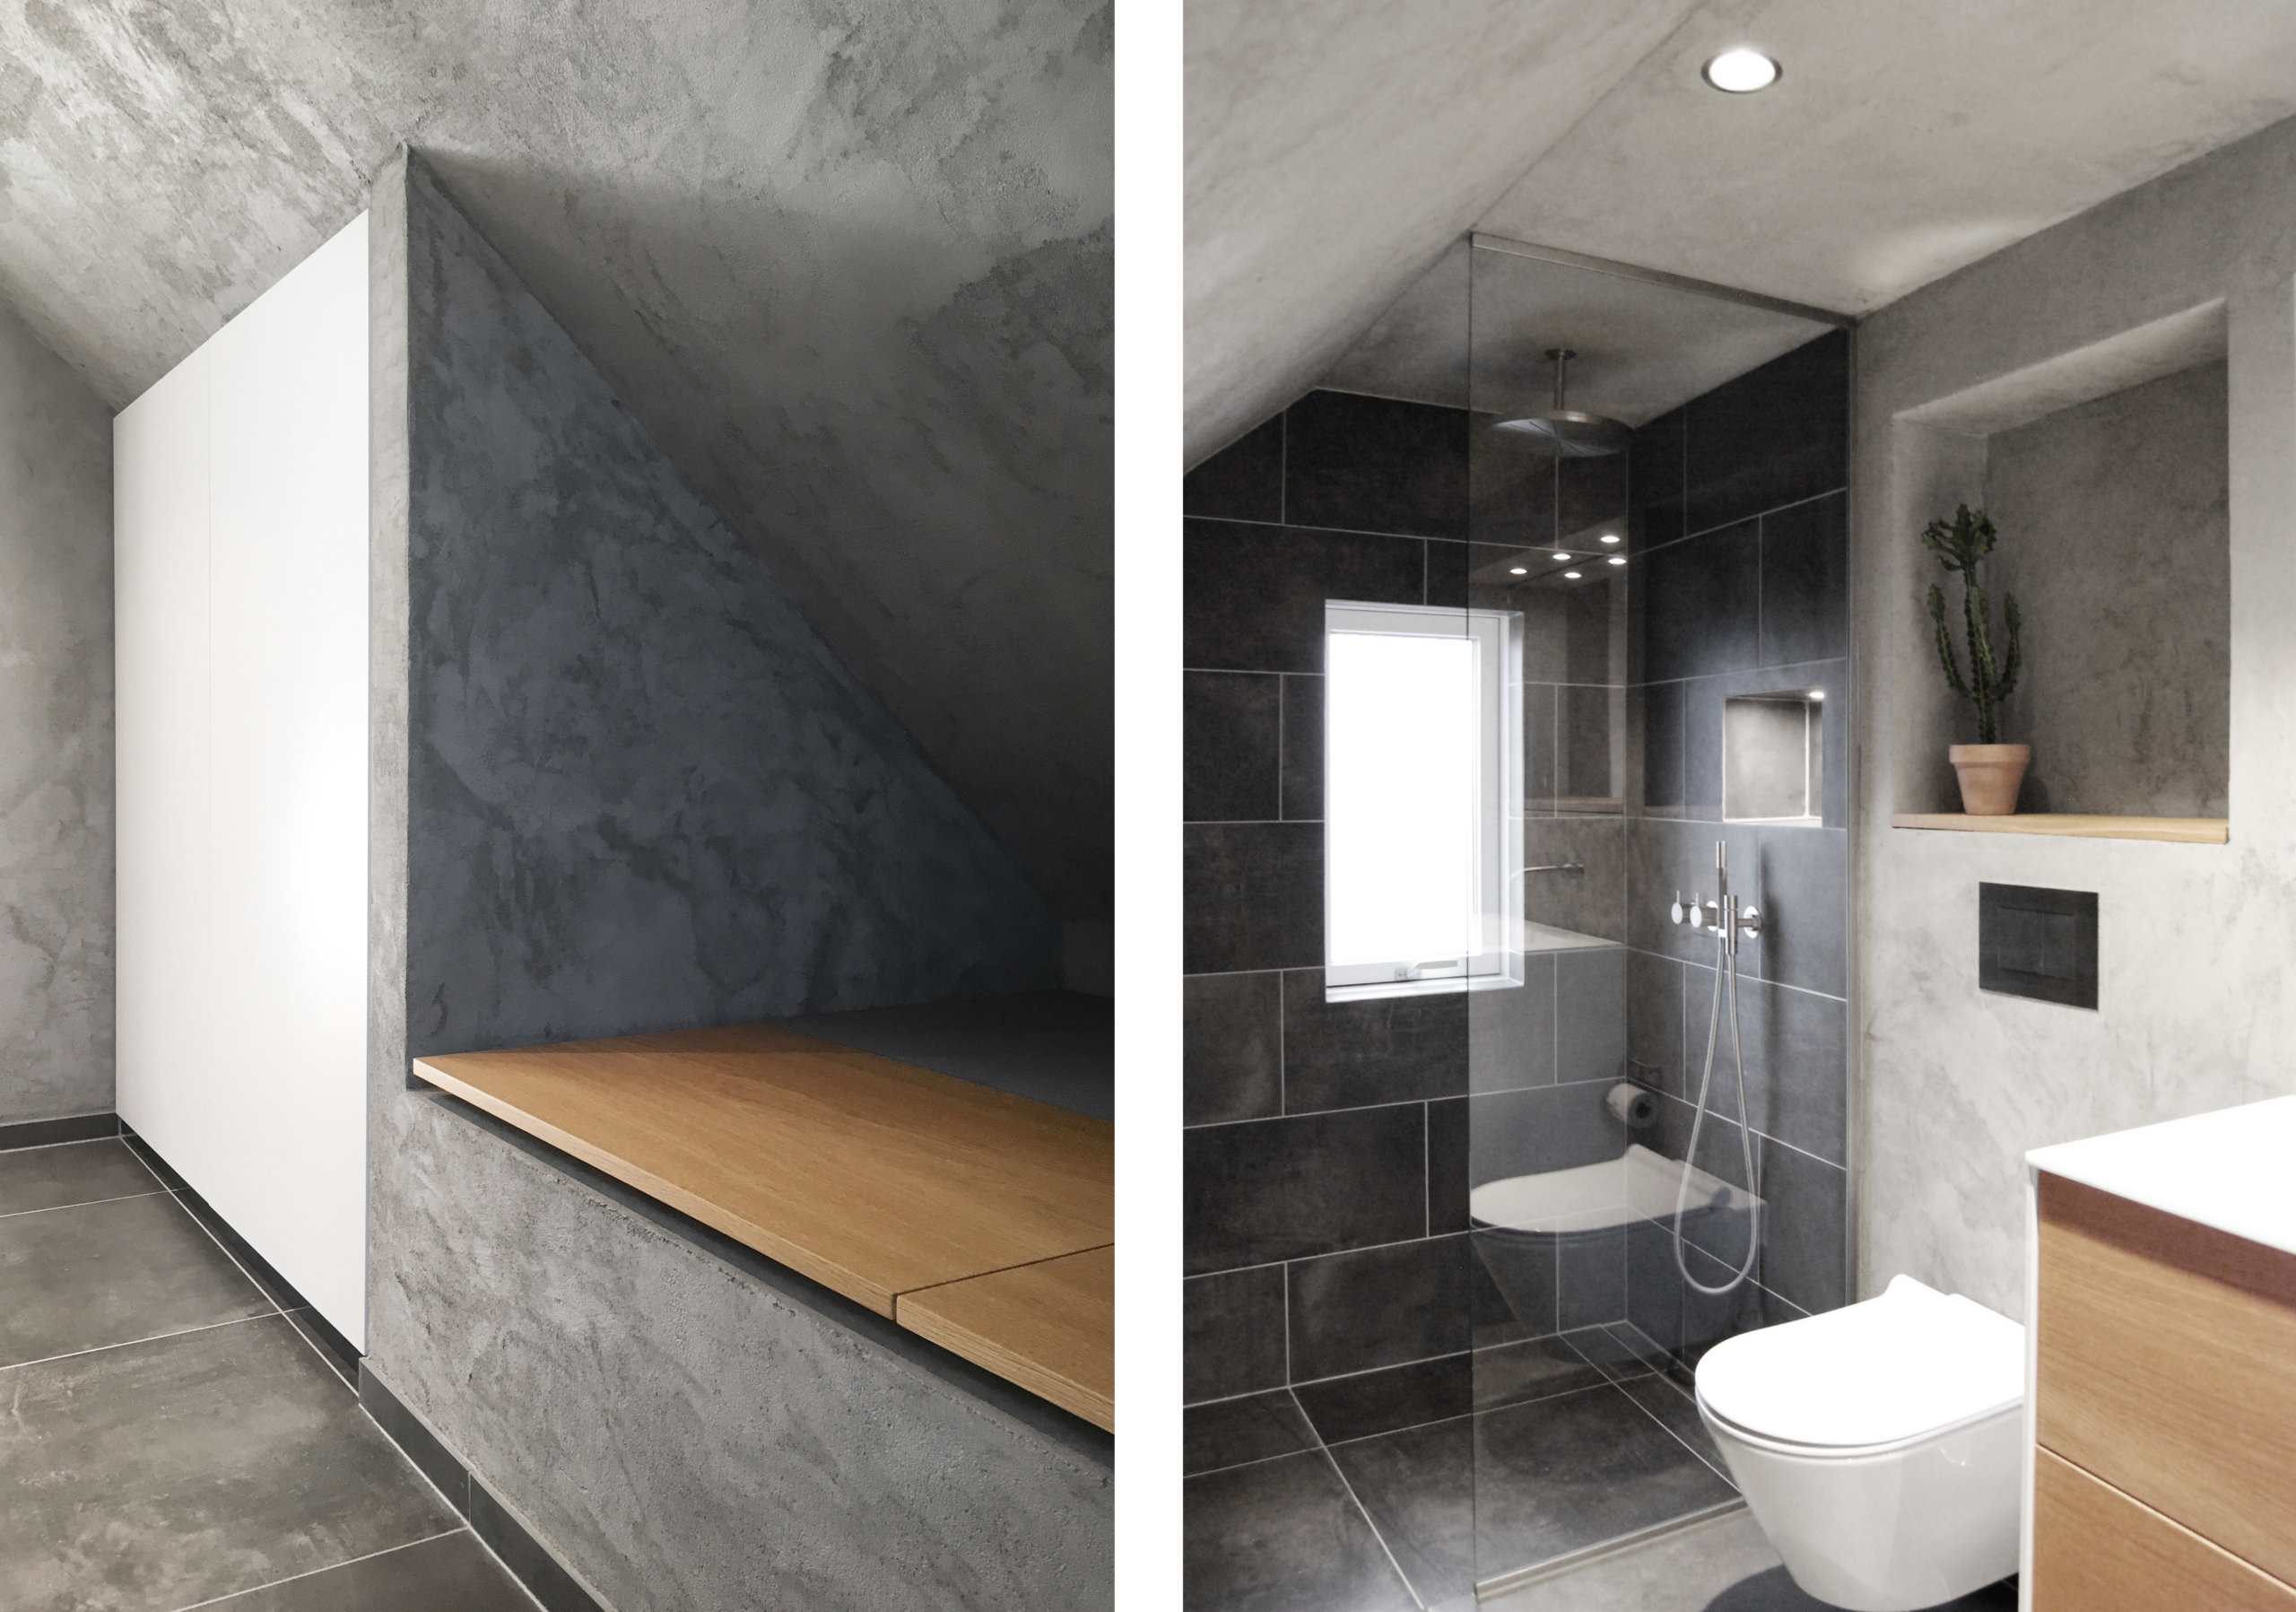 Rouch-concrete-walls-are-combined-with-dark-gray-tiles-and-wooden-vanity-inside-the-posh-modern-bathroom-74271-scaled